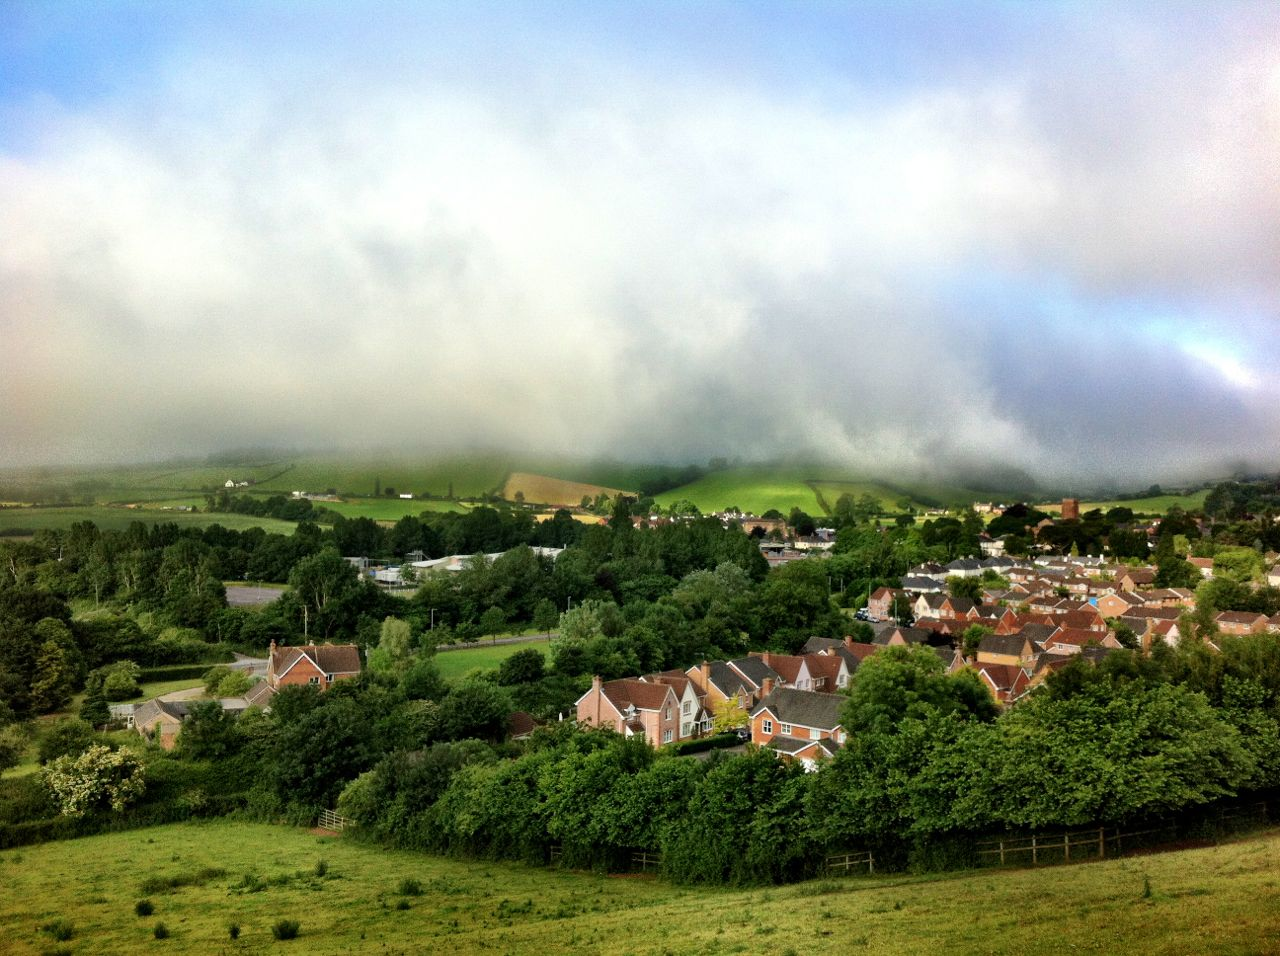 The Wivey Way, A 20 Mile Circular Walk Around Wiveliscombe, Somerset